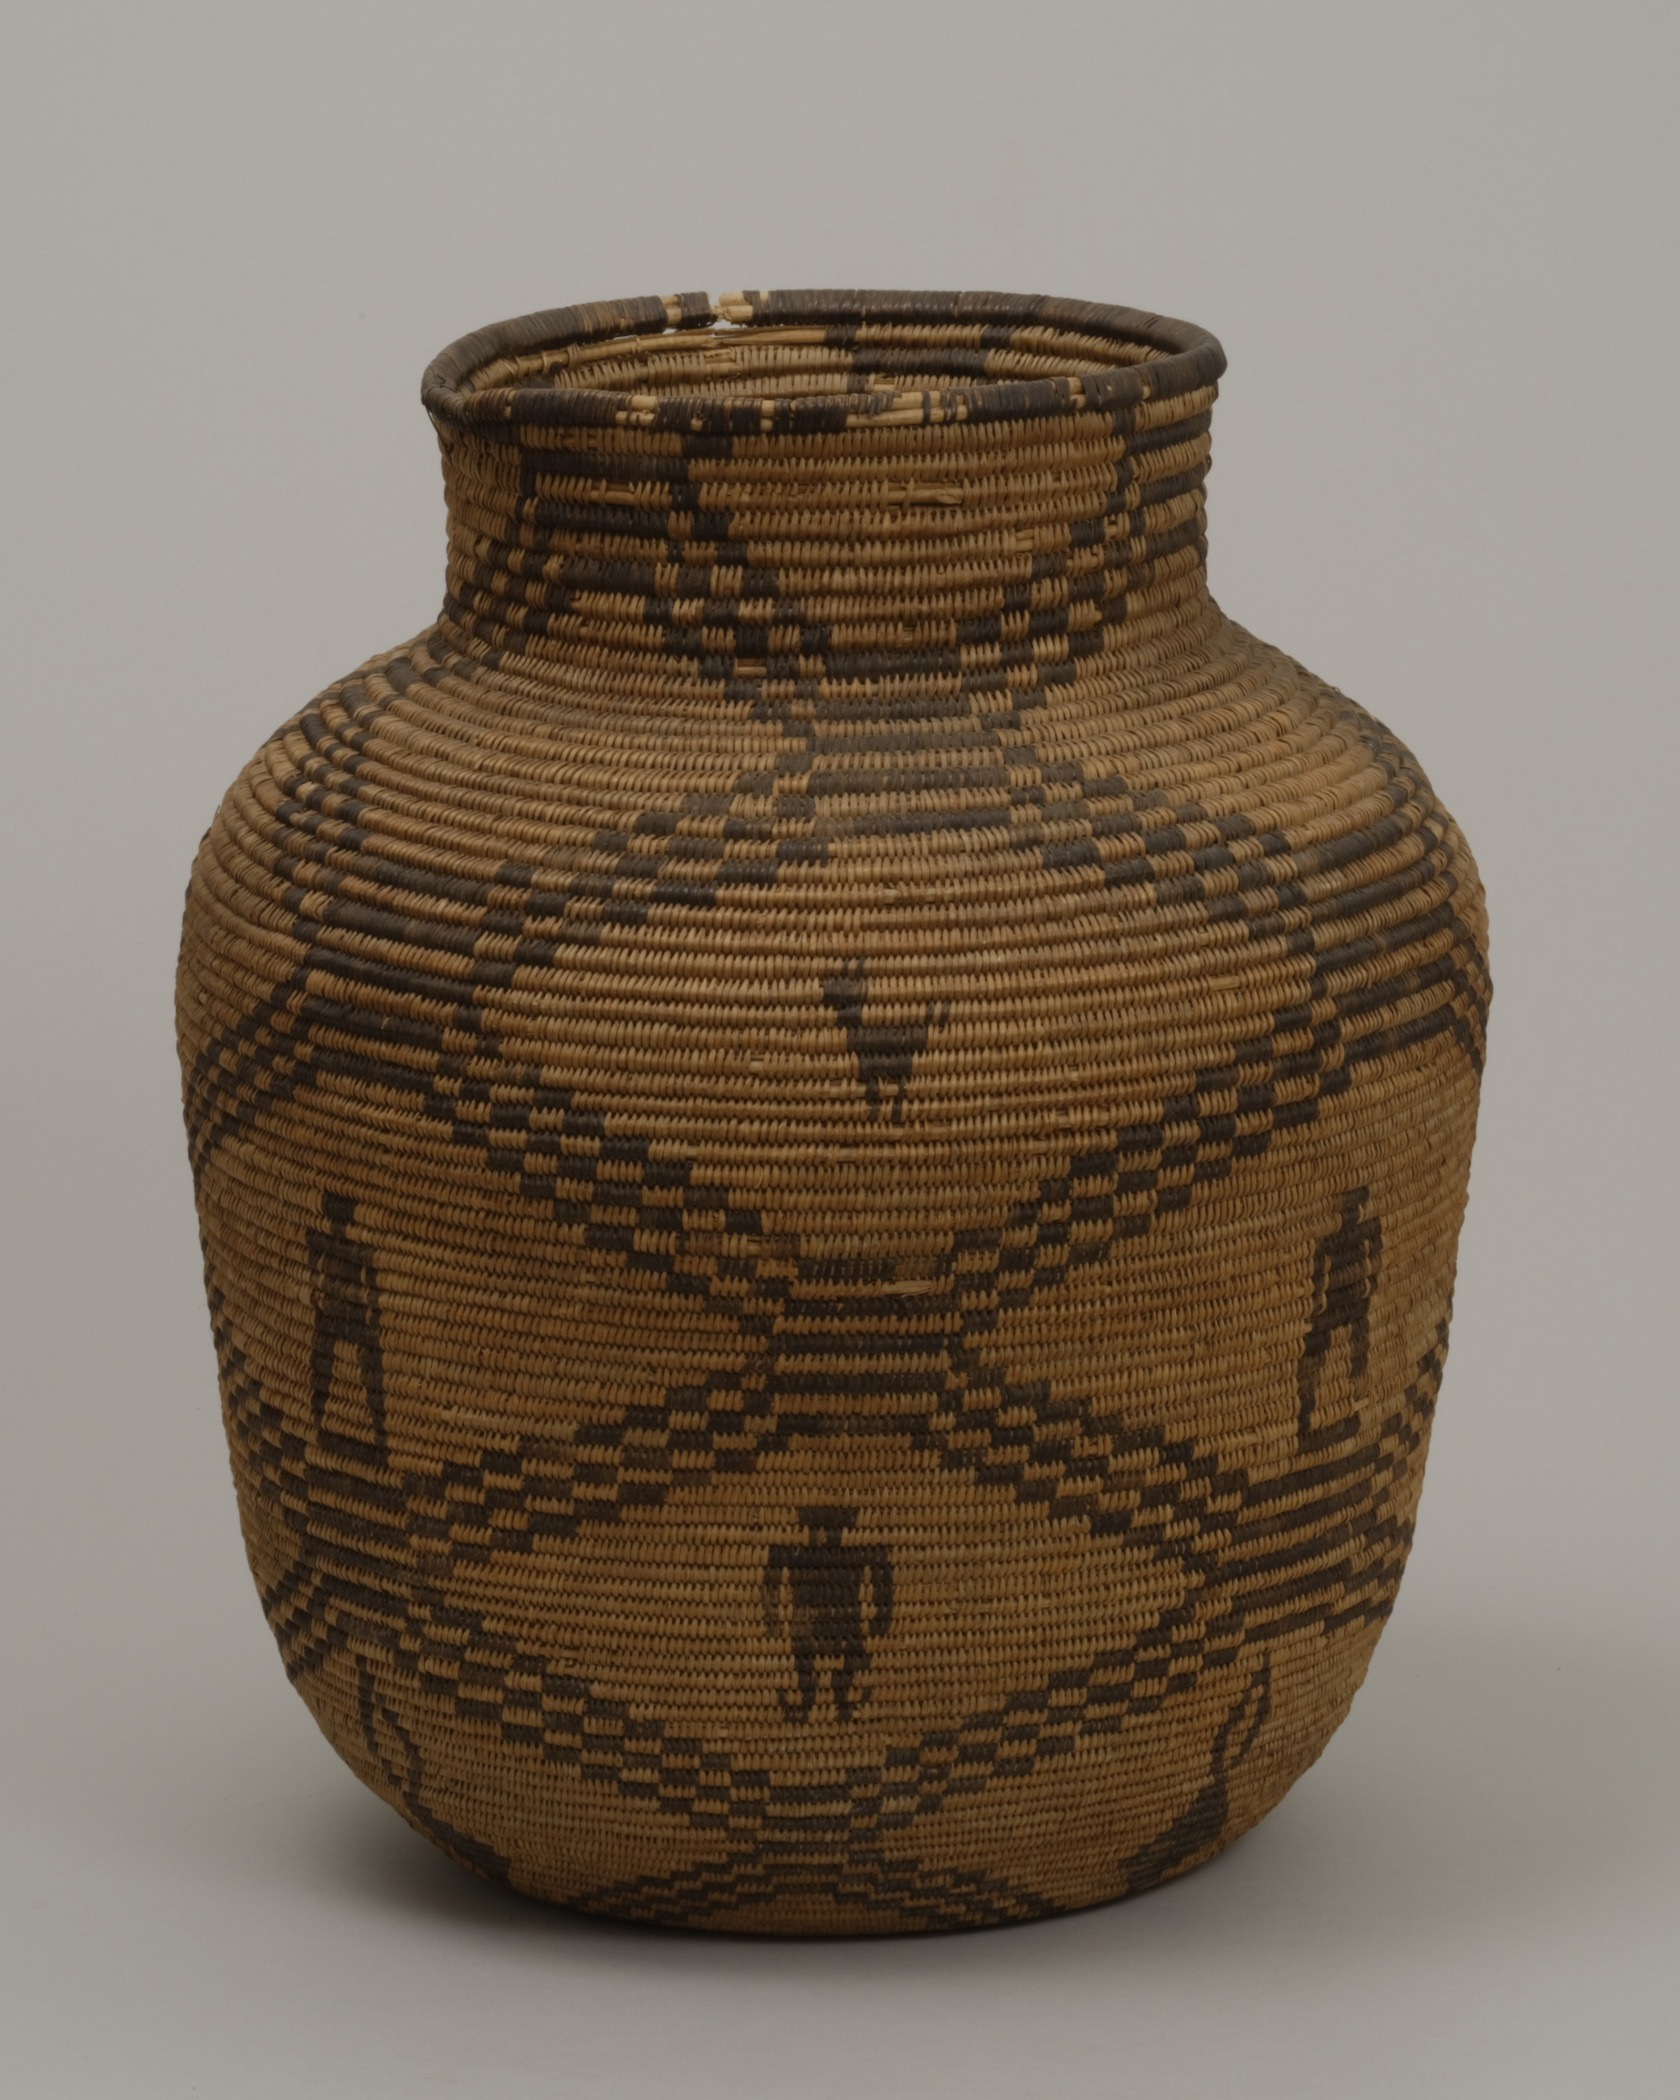 Western Apache, Arizona,jar-shaped basket, early 20th century. Willow, martynia, and cottonwood, 15 15/16 × 13 3/8 in. Hood Museum of Art, Dartmouth College: Gift of Miss Annah P. Hazen; 158.24.14208.